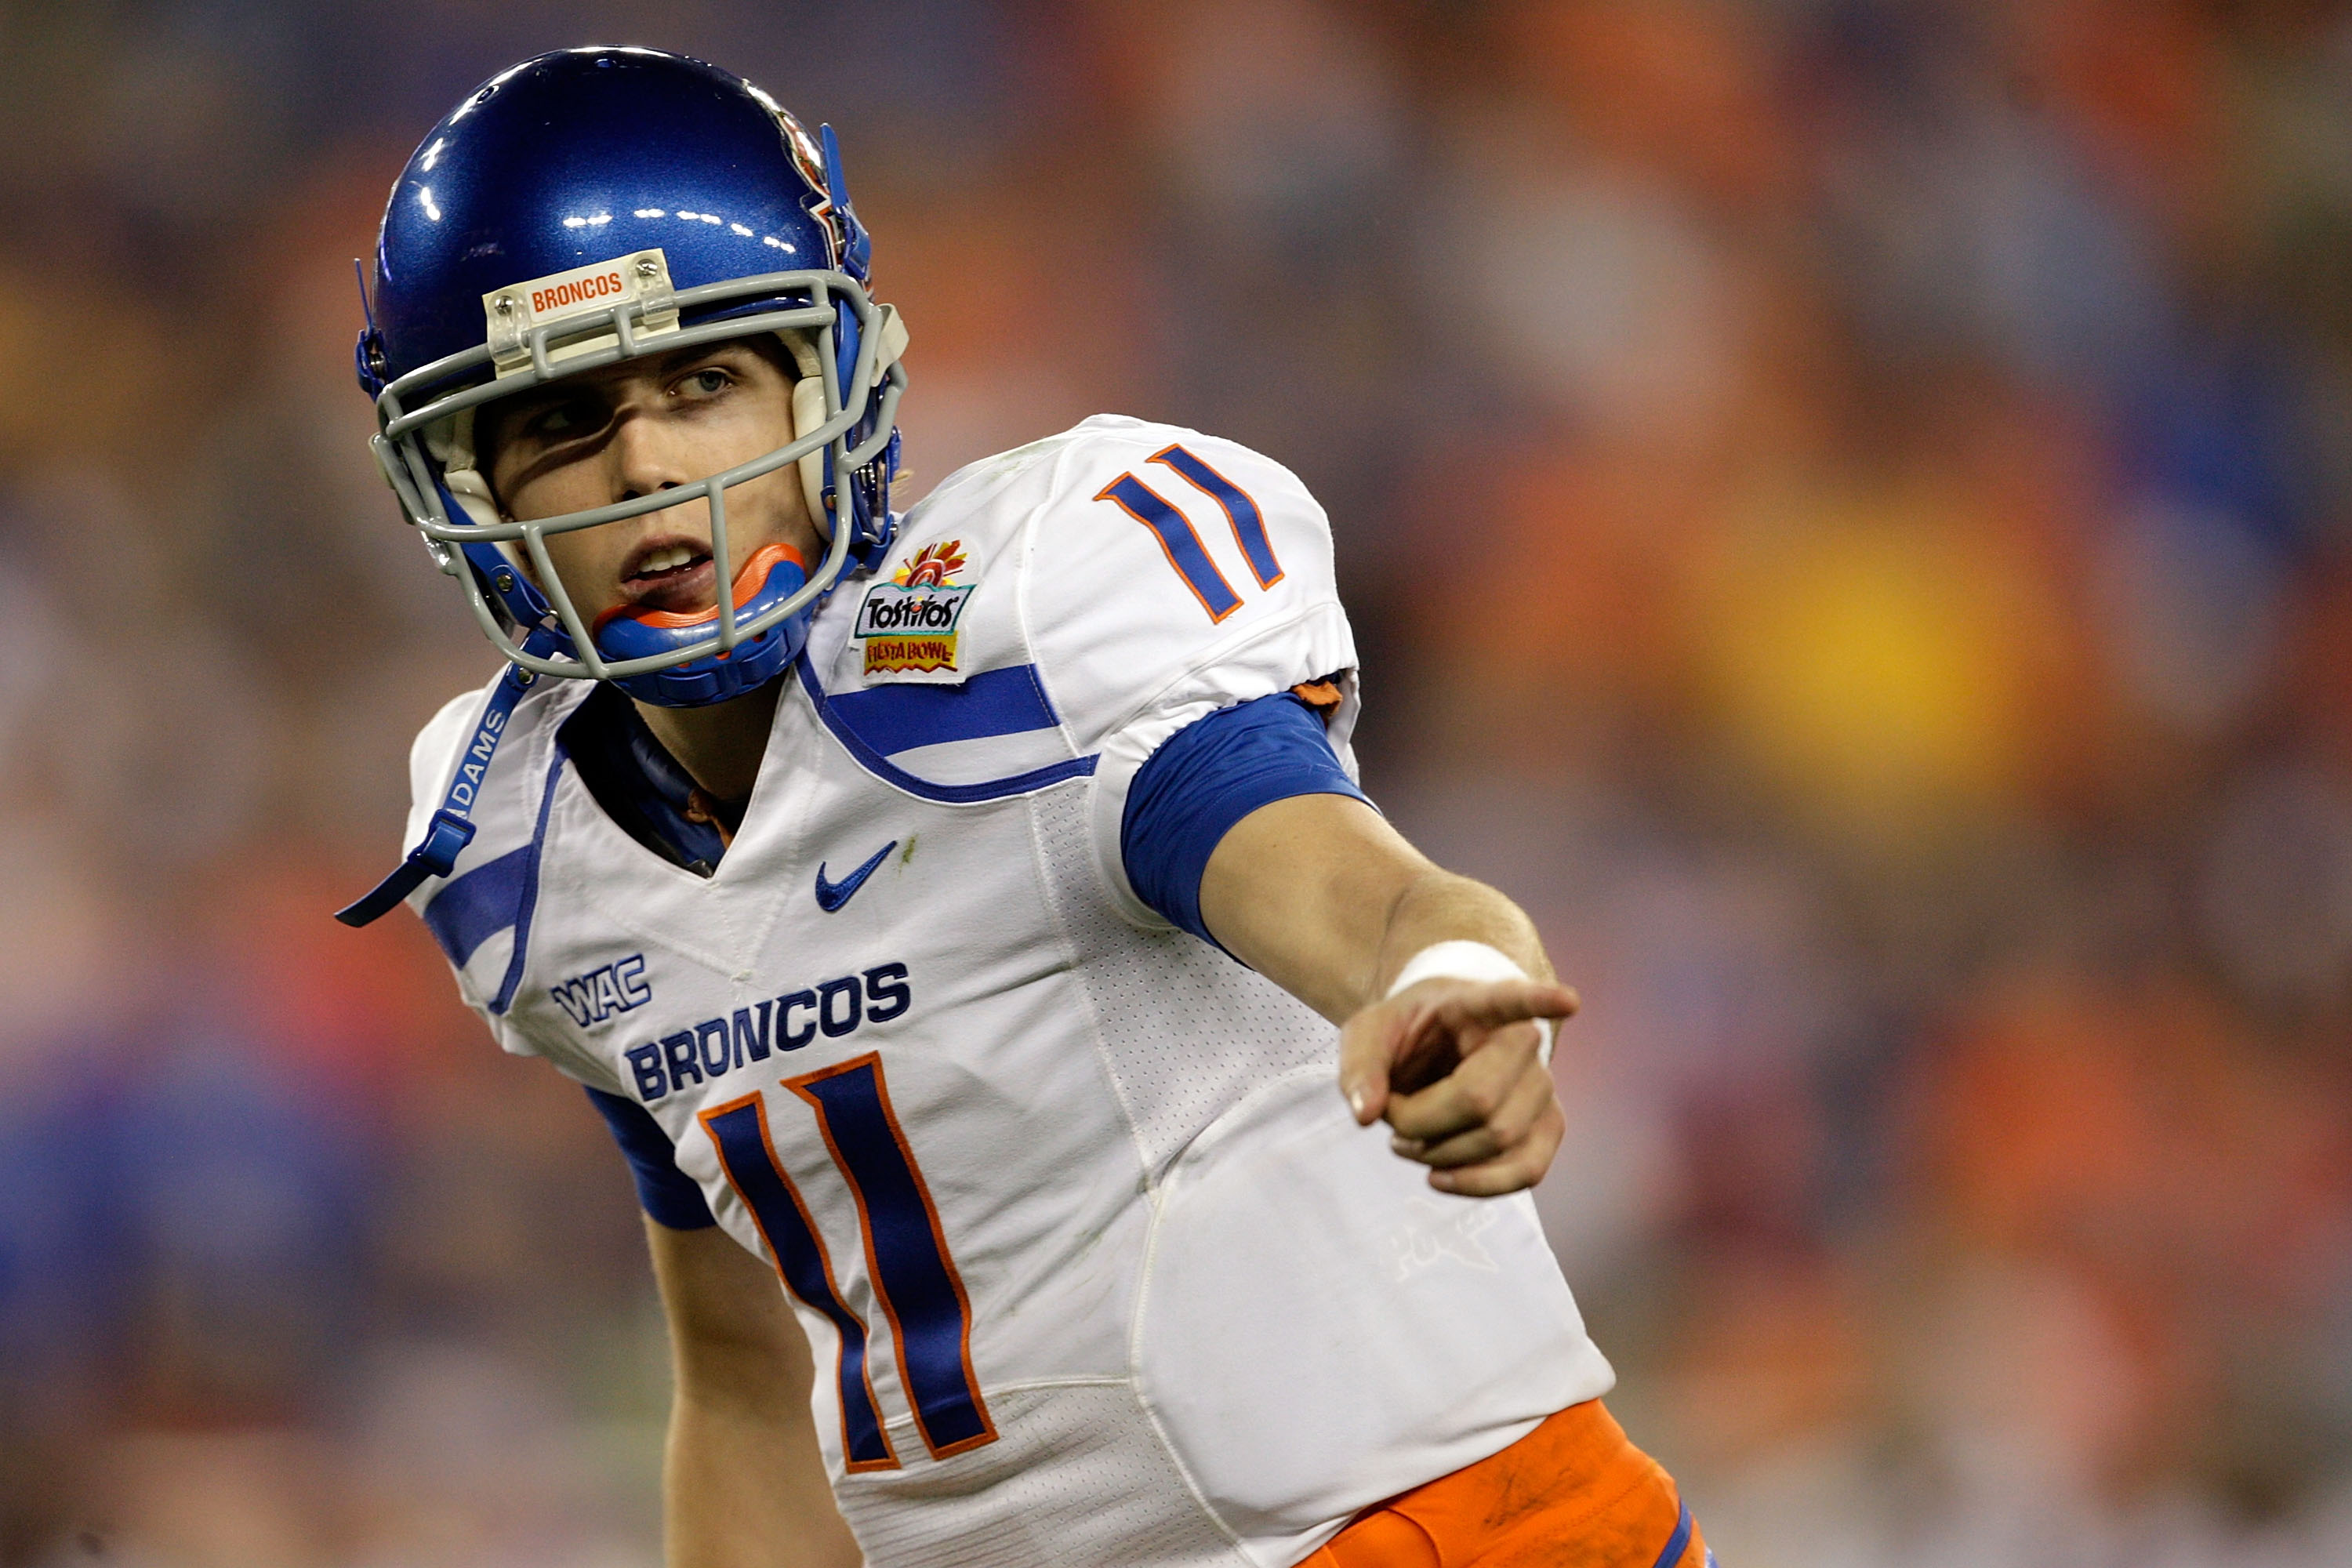 GLENDALE, AZ - JANUARY 04:  Quarterback Kellen Moore #11 of the Boise State Broncos points in the first half against the TCU Horned Frogs during the Tostitos Fiesta Bowl at the Universtity of Phoenix Stadium on January 4, 2010 in Glendale, Arizona.  (Phot